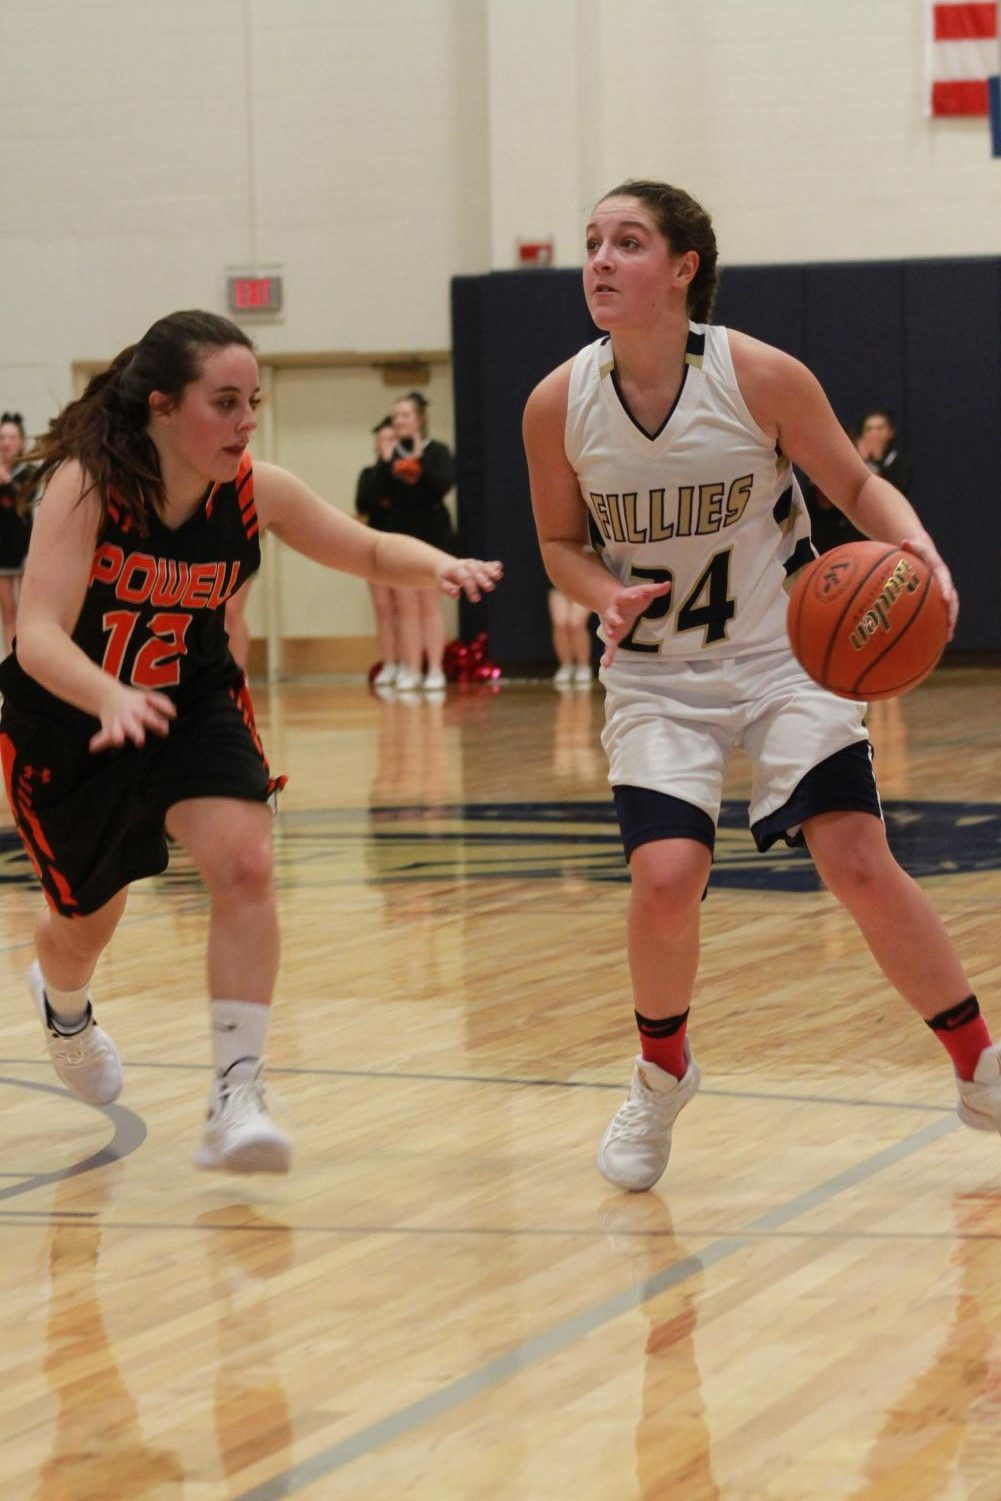 Sophomore Torrie Schutzman dribbles down the court lookiing for an assist.